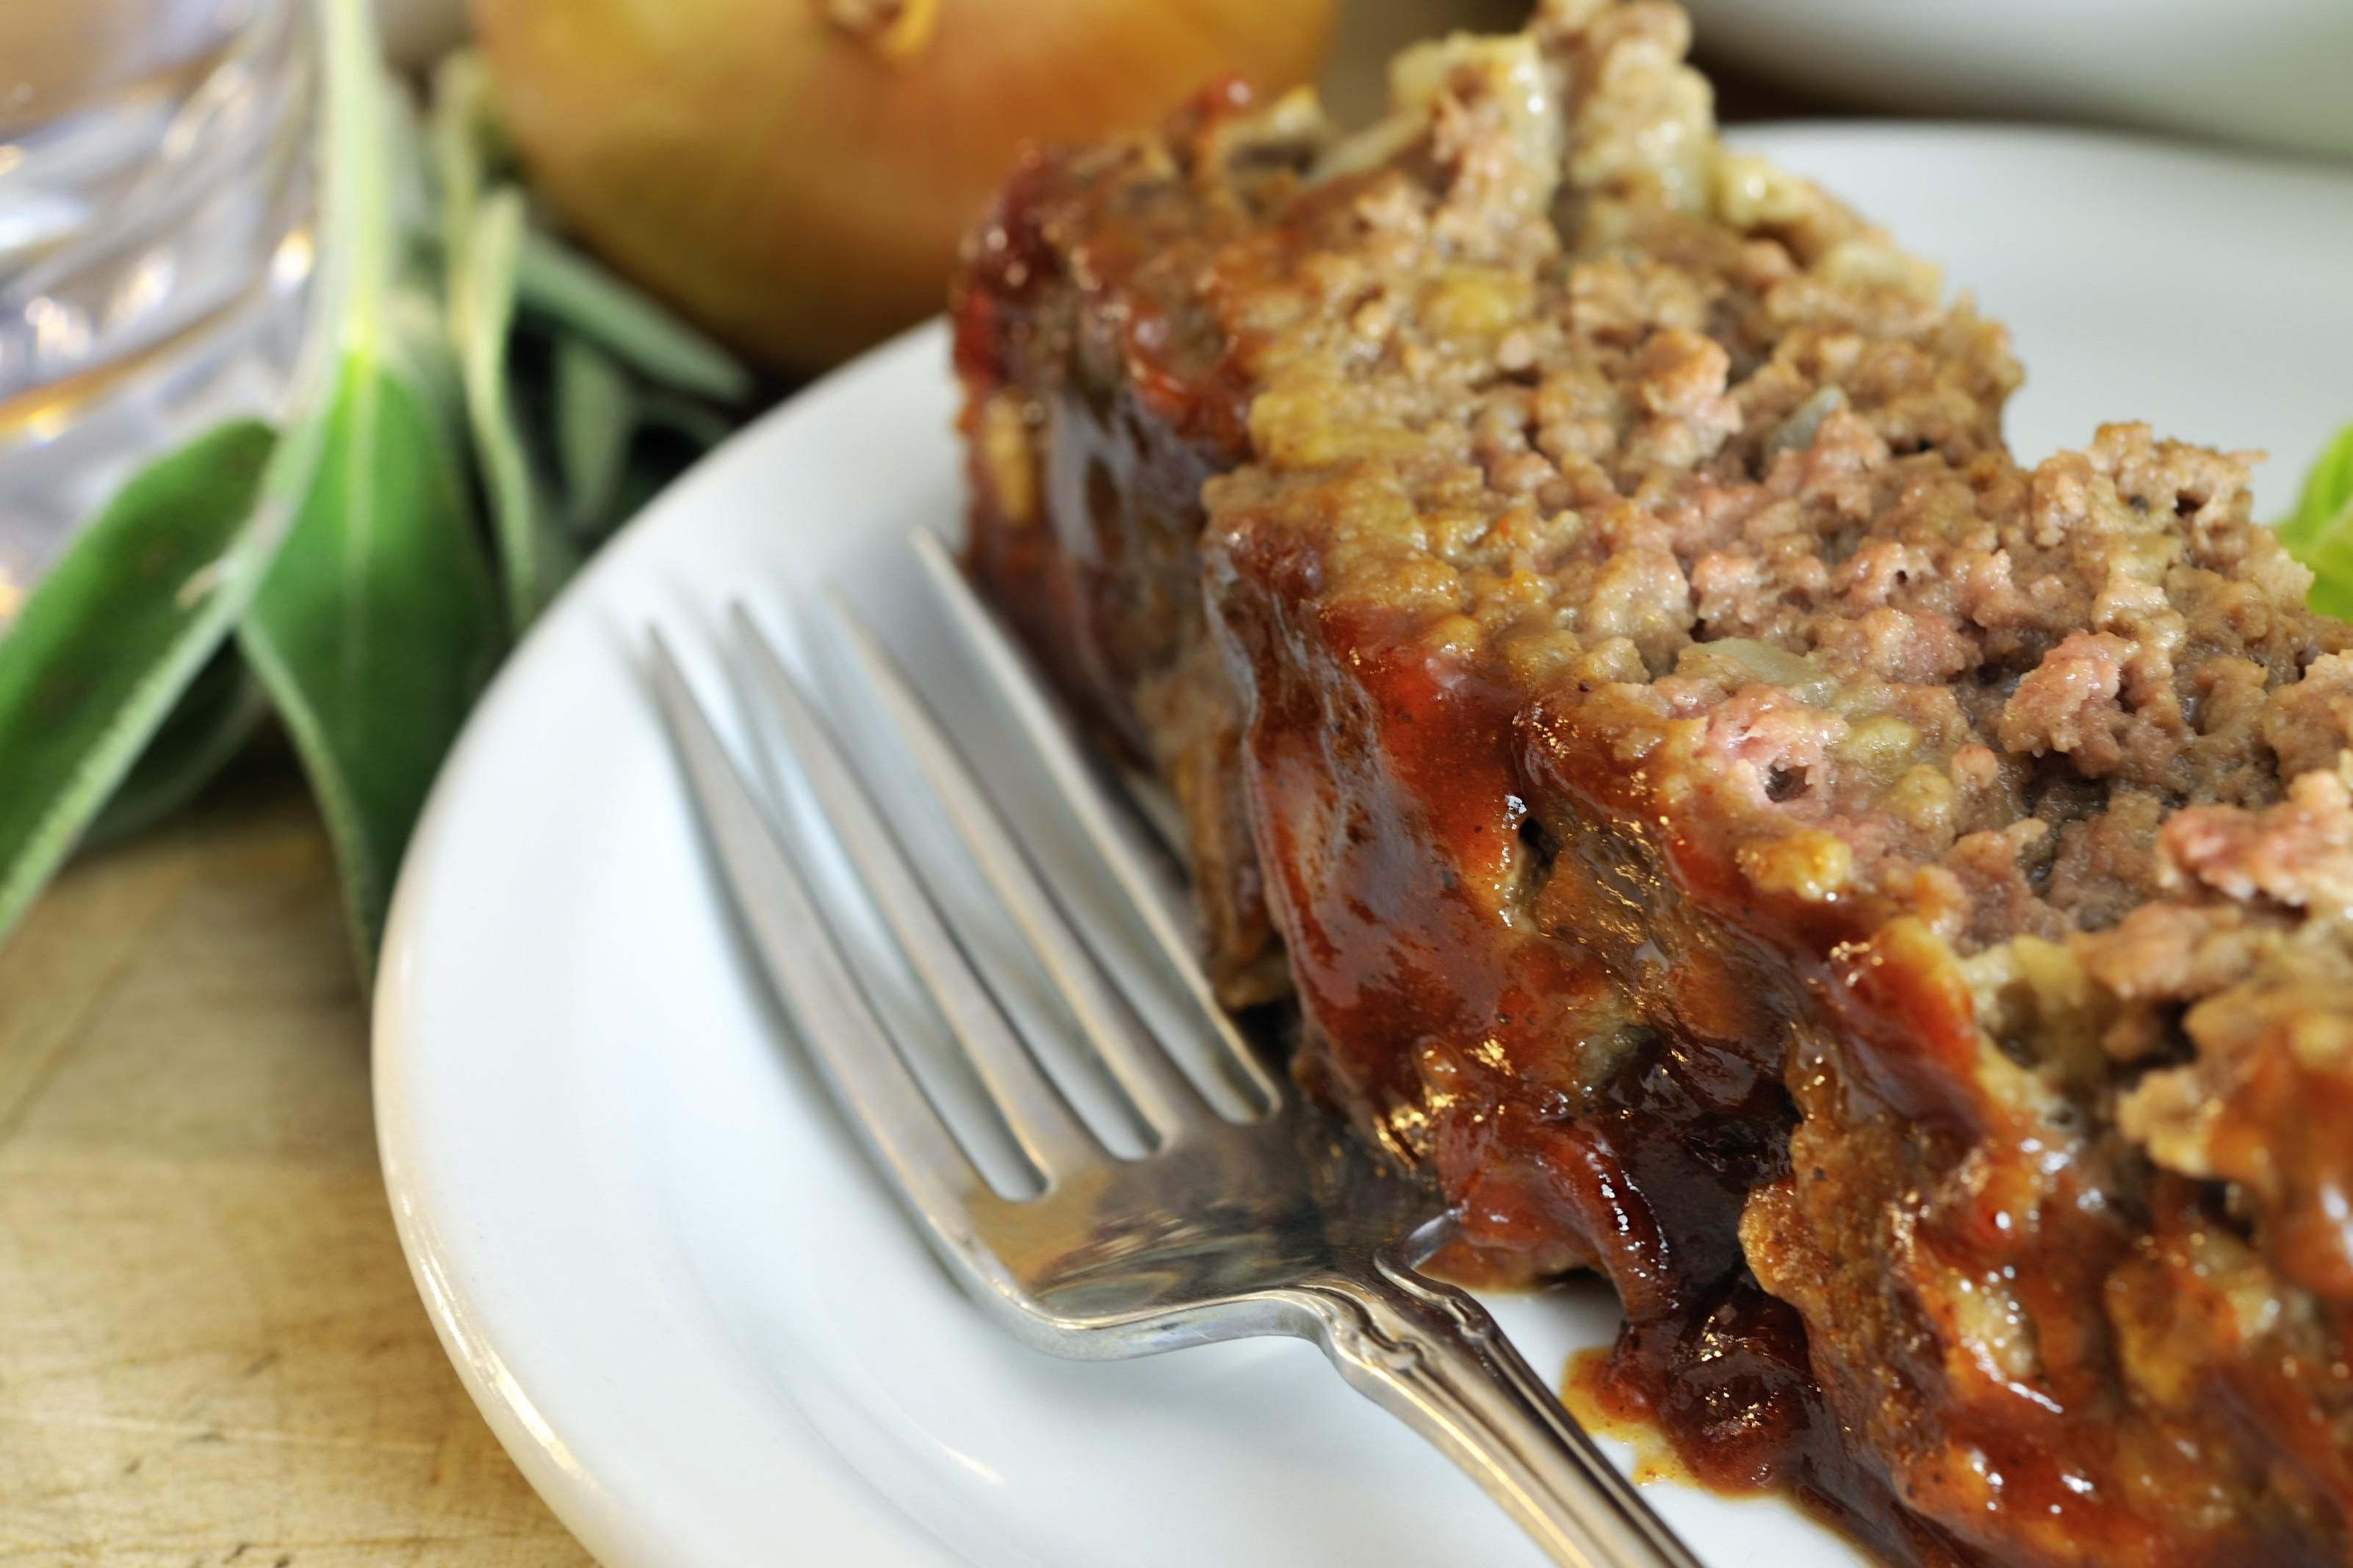 Polpettone della nonna al lambrusco italy wine food recipe a meatloaf fit for champions recipe forumfinder Images